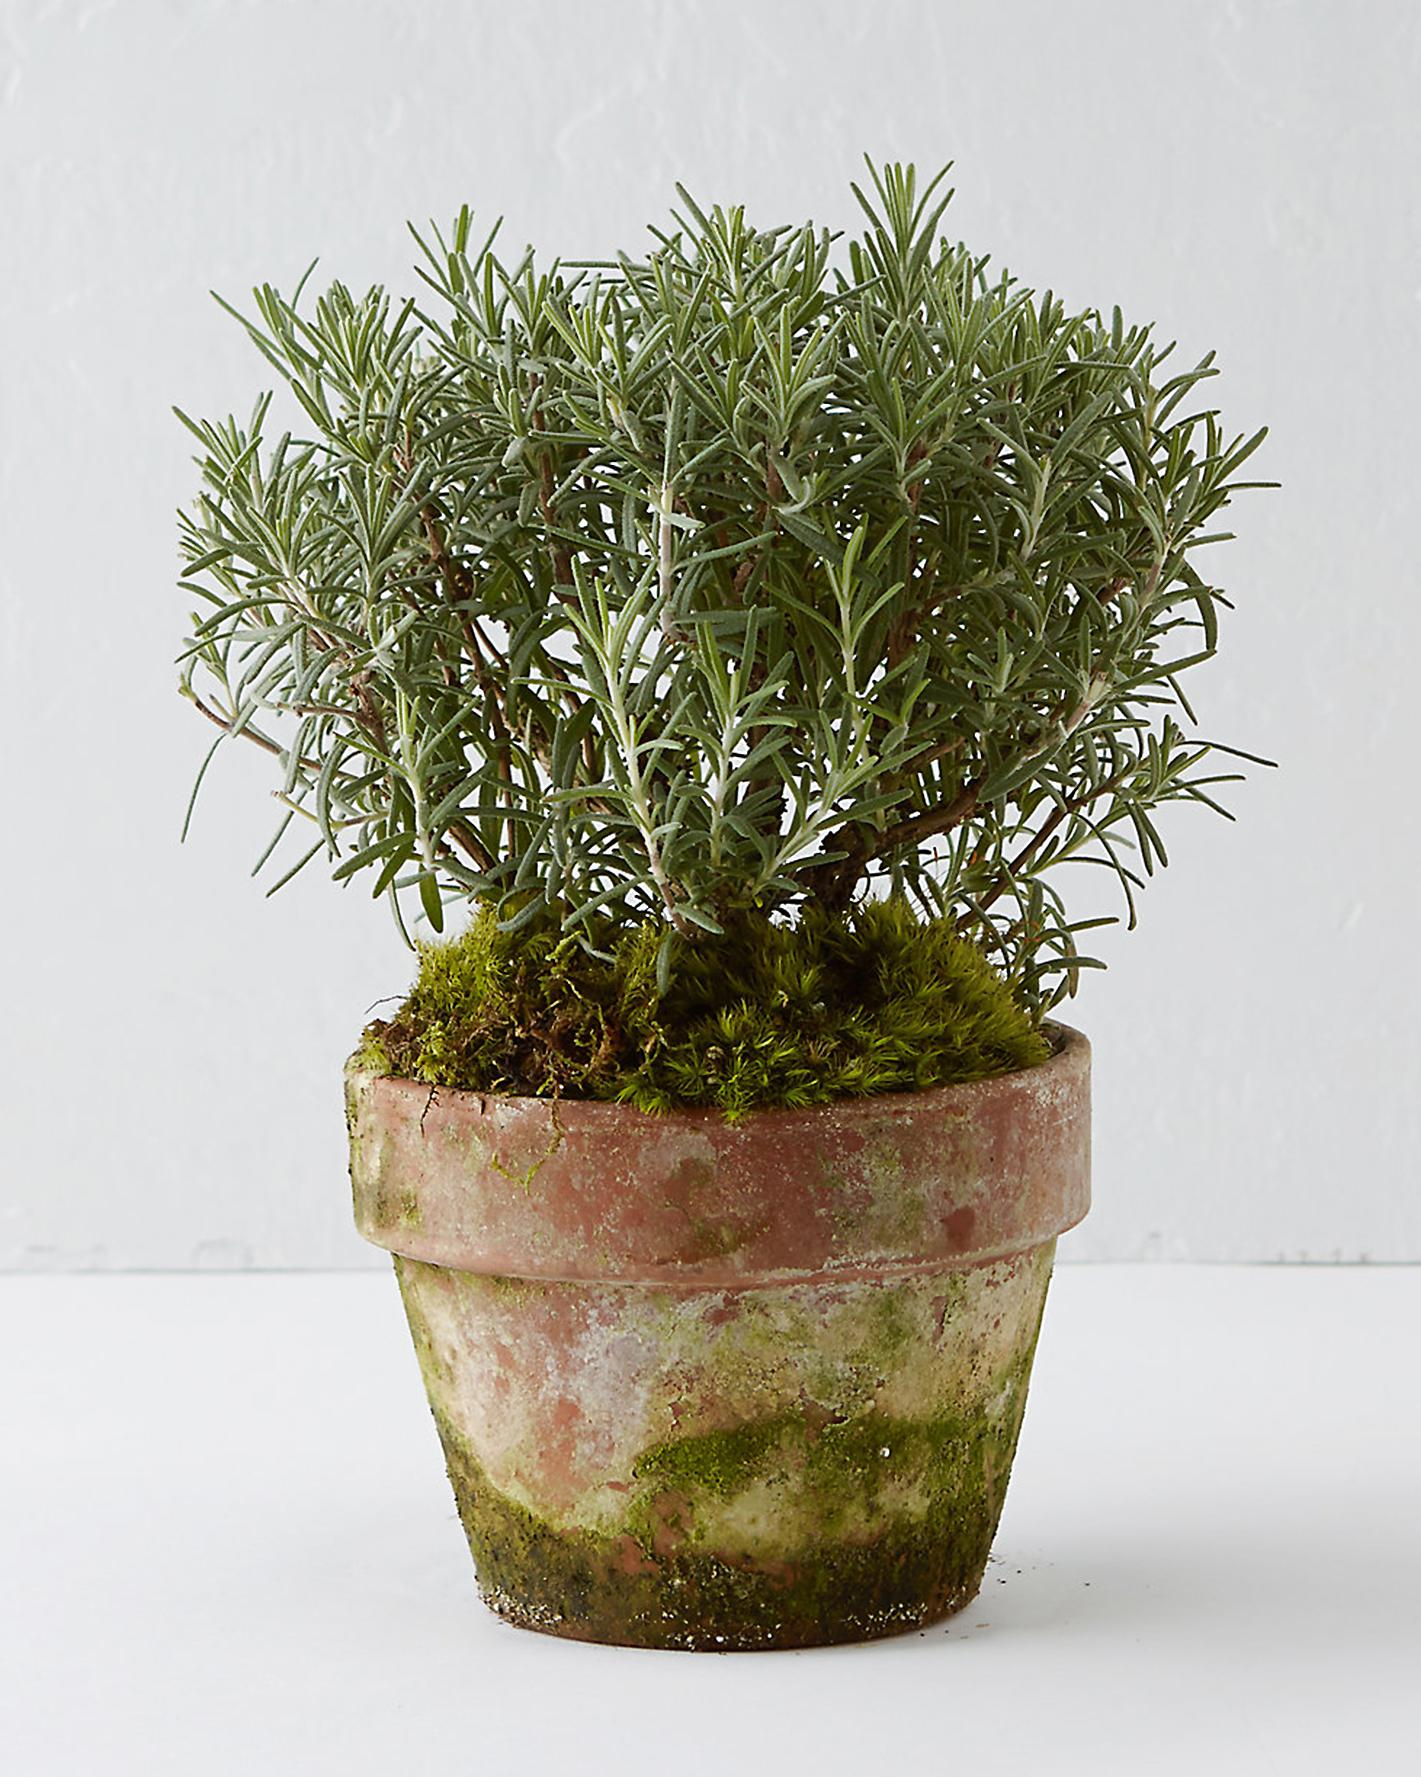 terrain-potted-plant-0715